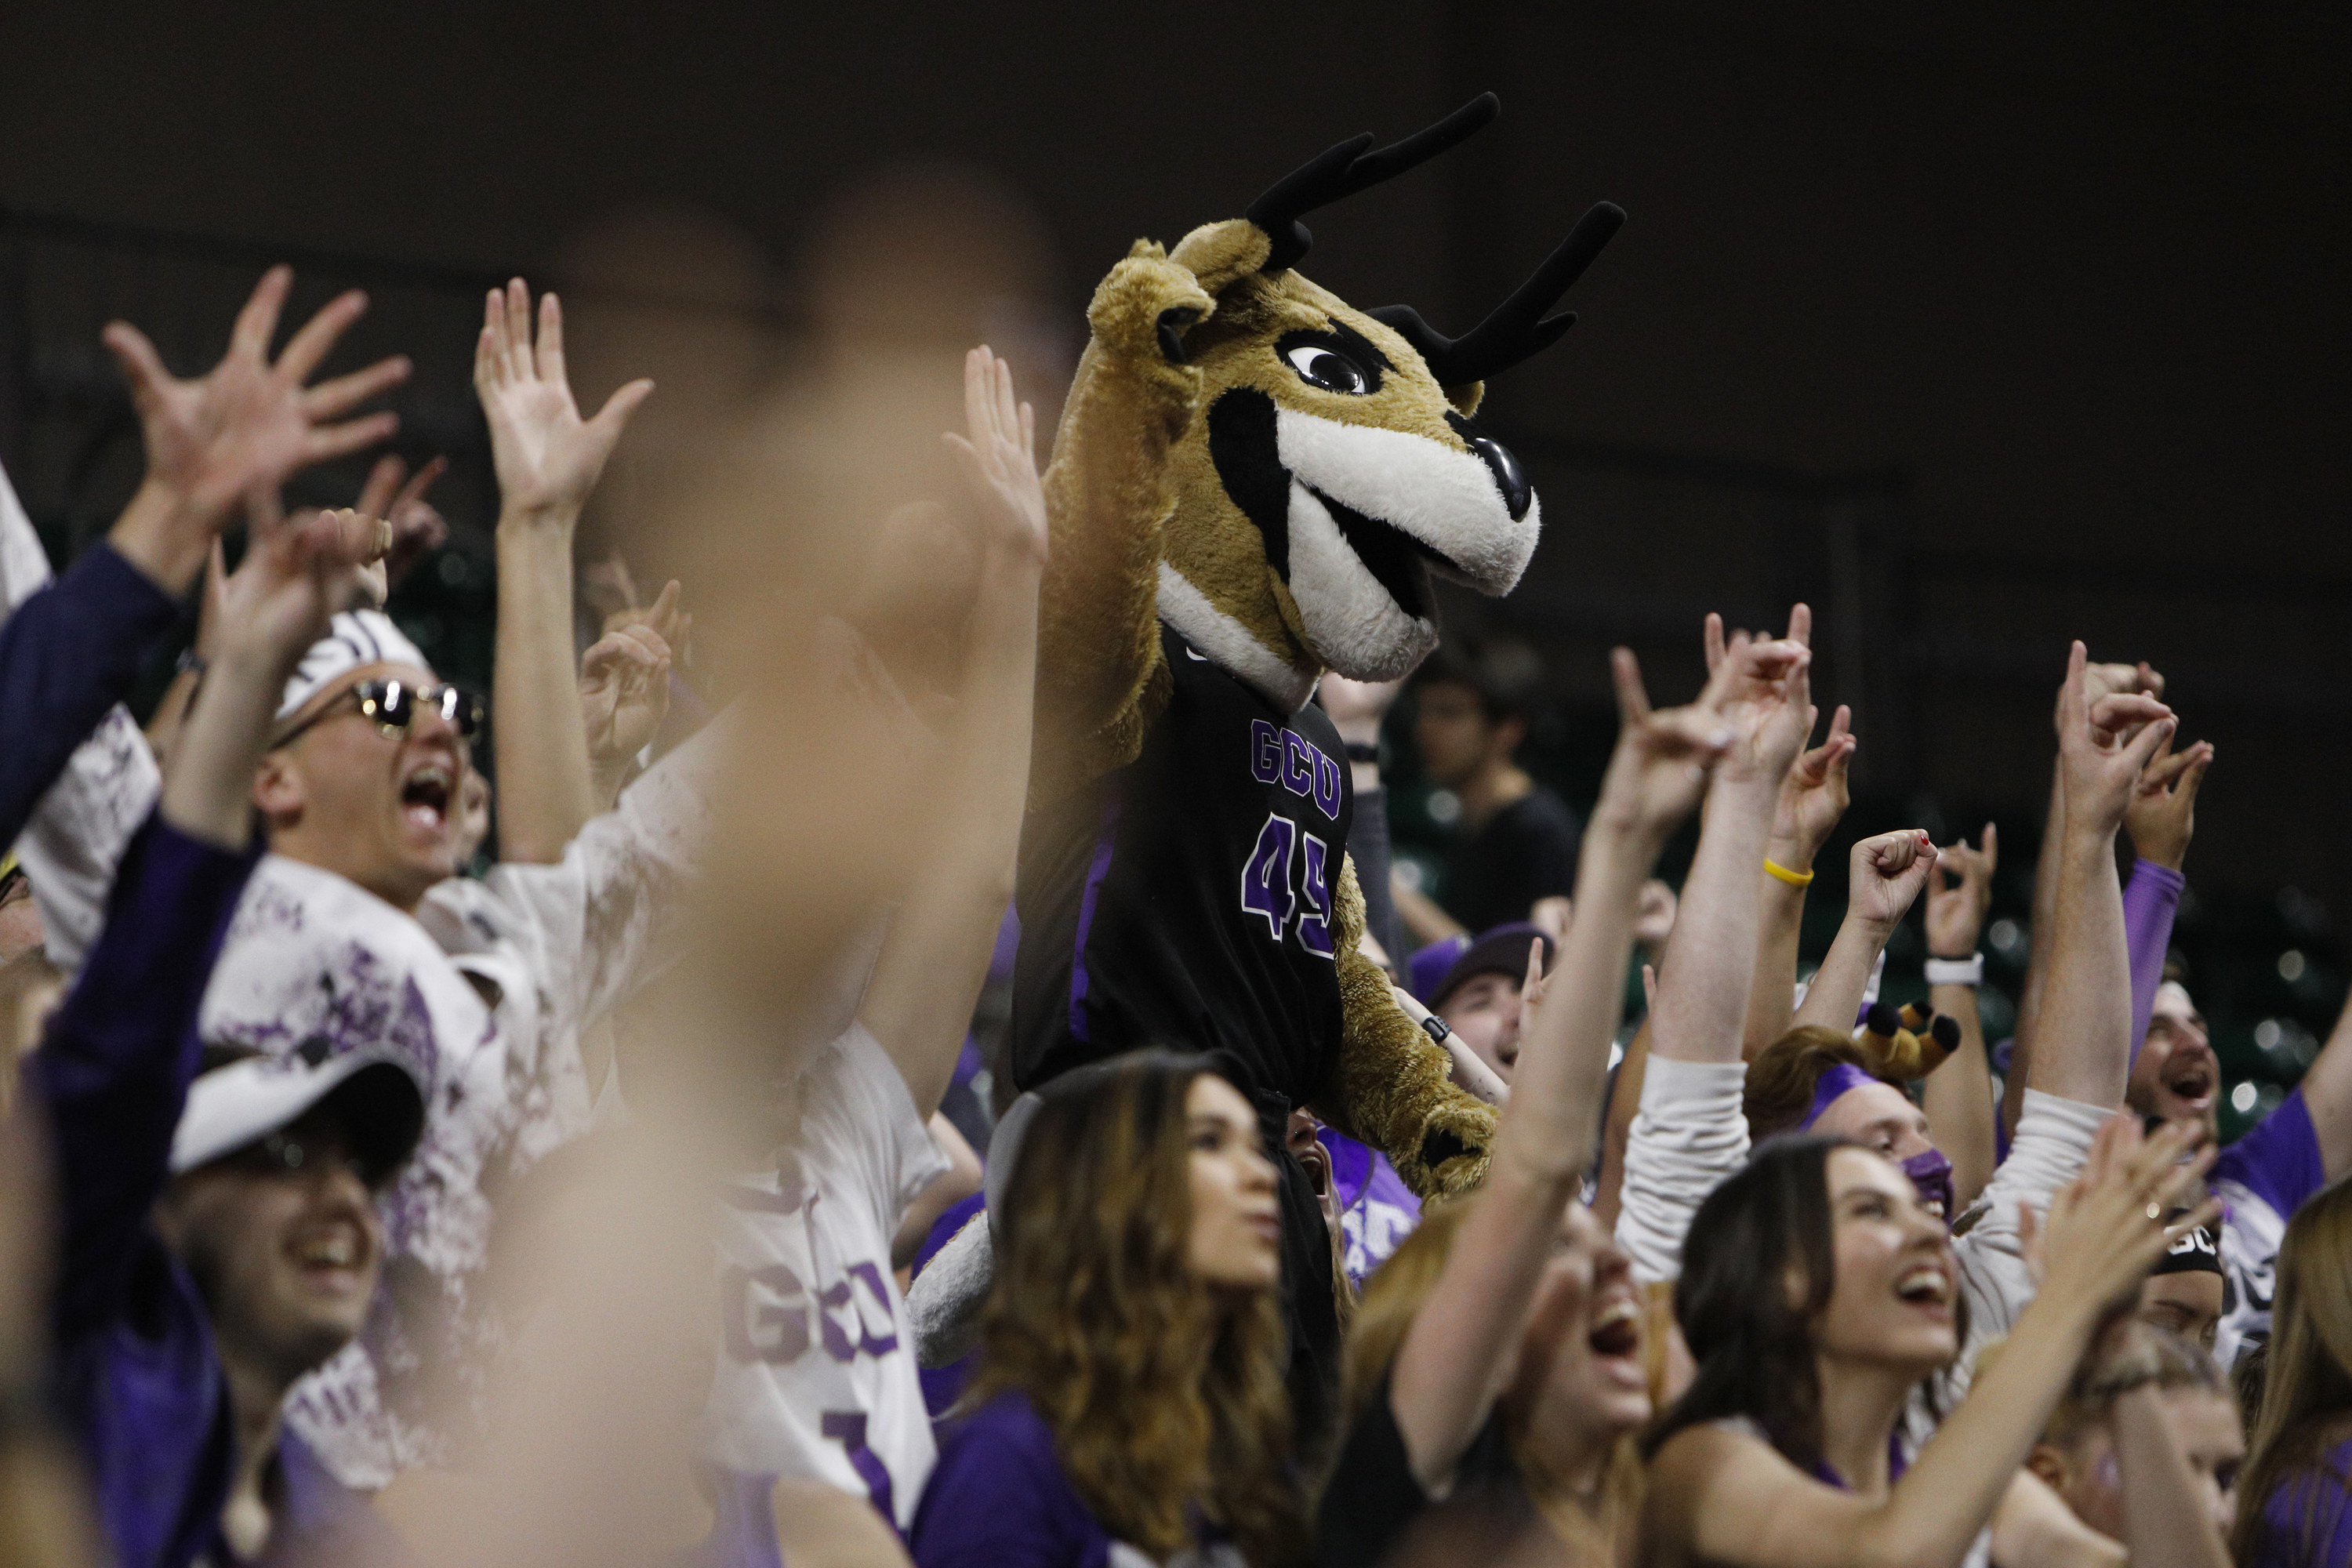 Antelope mascot with black antlers cheering in crowd.